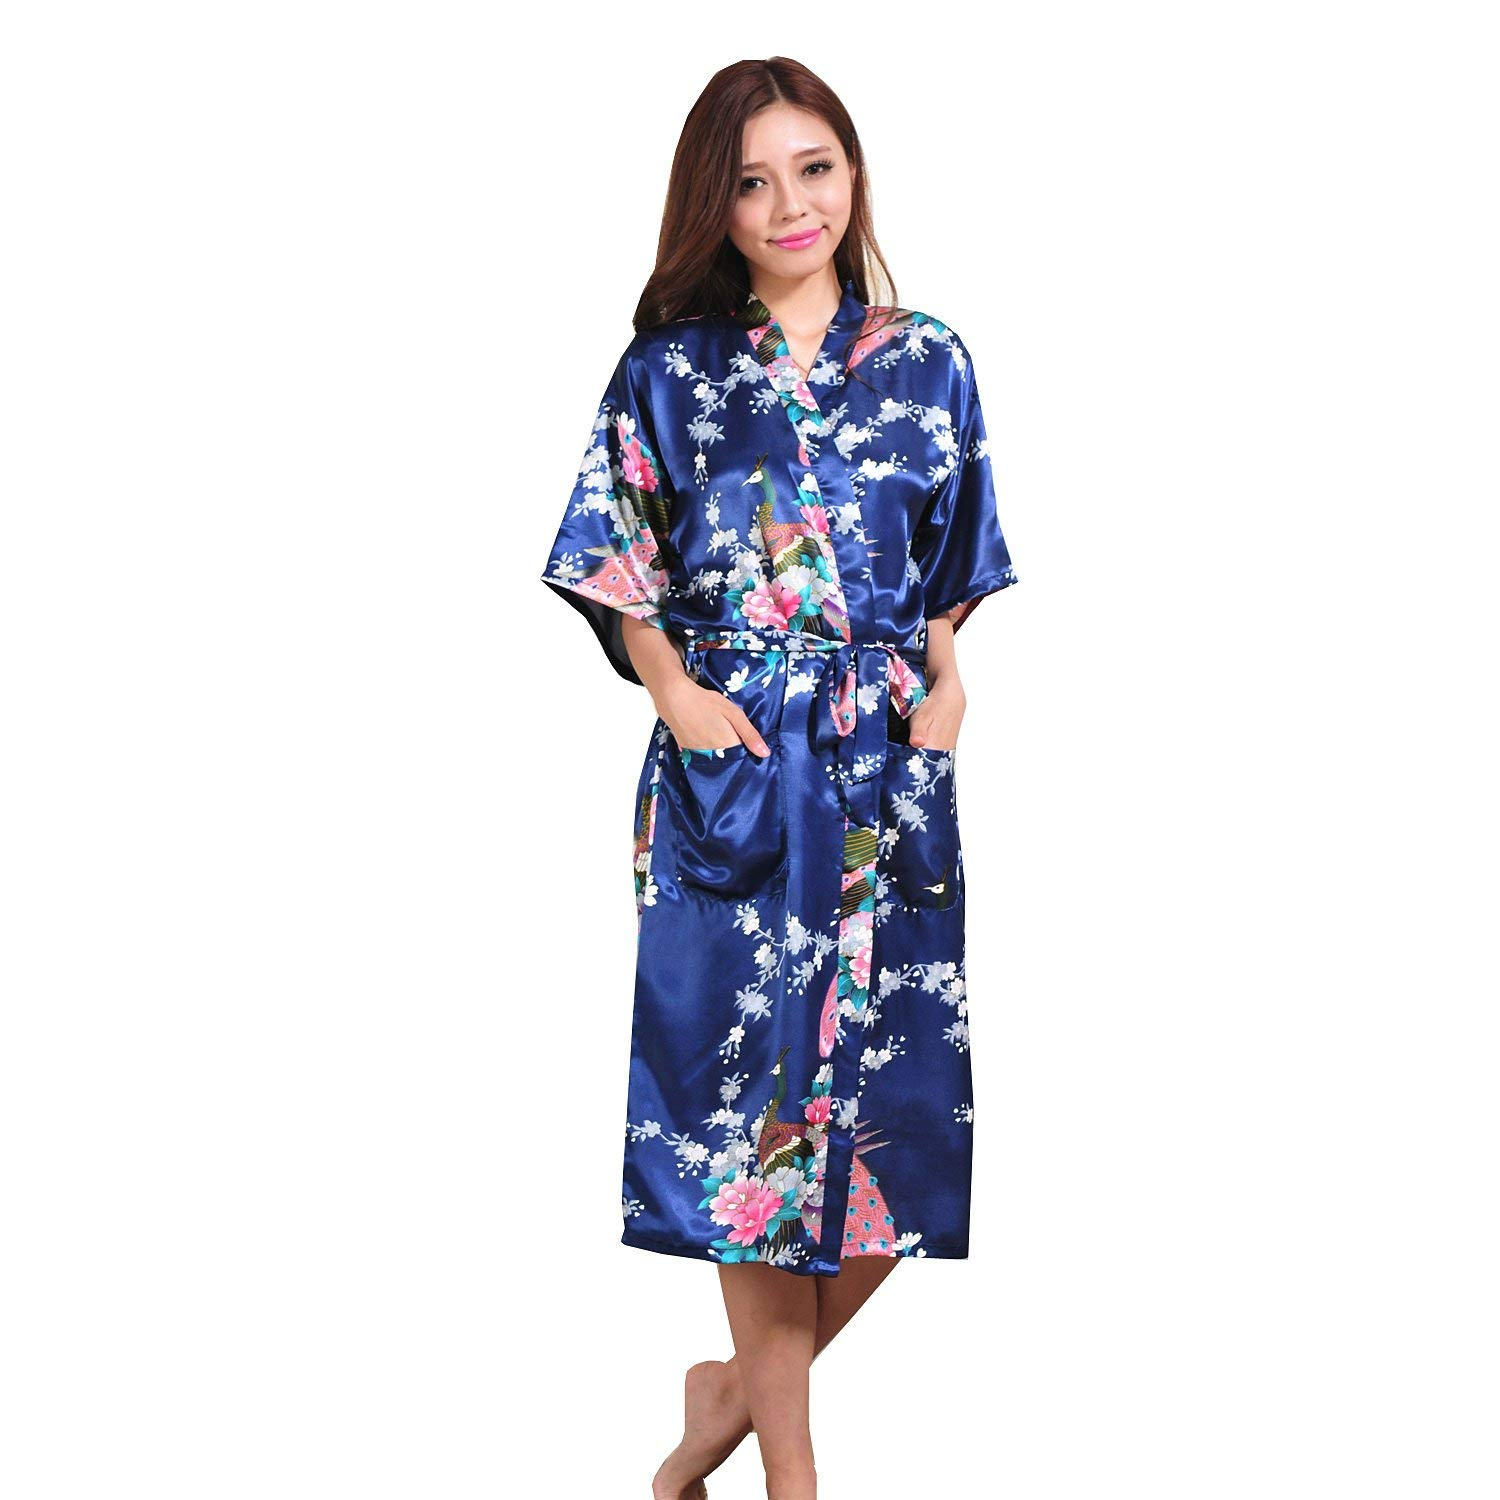 093063b4a9 Get Quotations · GAOLIGUO GL G Fashion gown lady long paragraph cardigan  Thin section Japanese kimono robe gown loose Navy